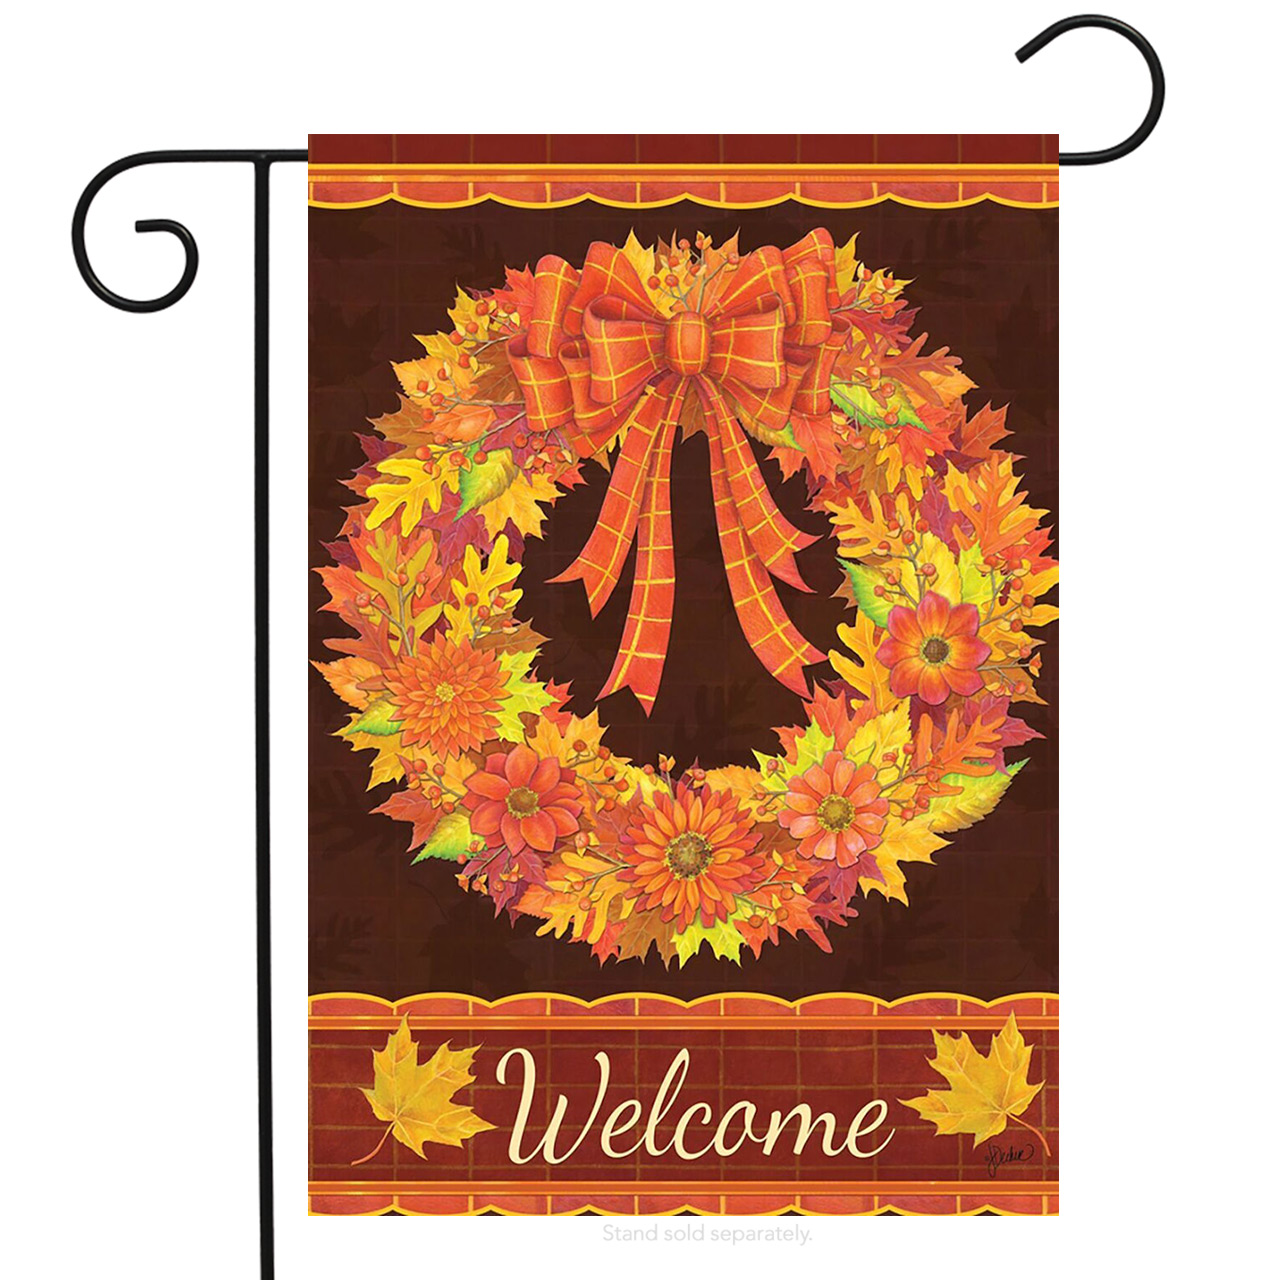 "Fall Wreath Garden Flag Welcome Autumn Leaves Floral 12.5"" x 18"" Briarwood Lane"